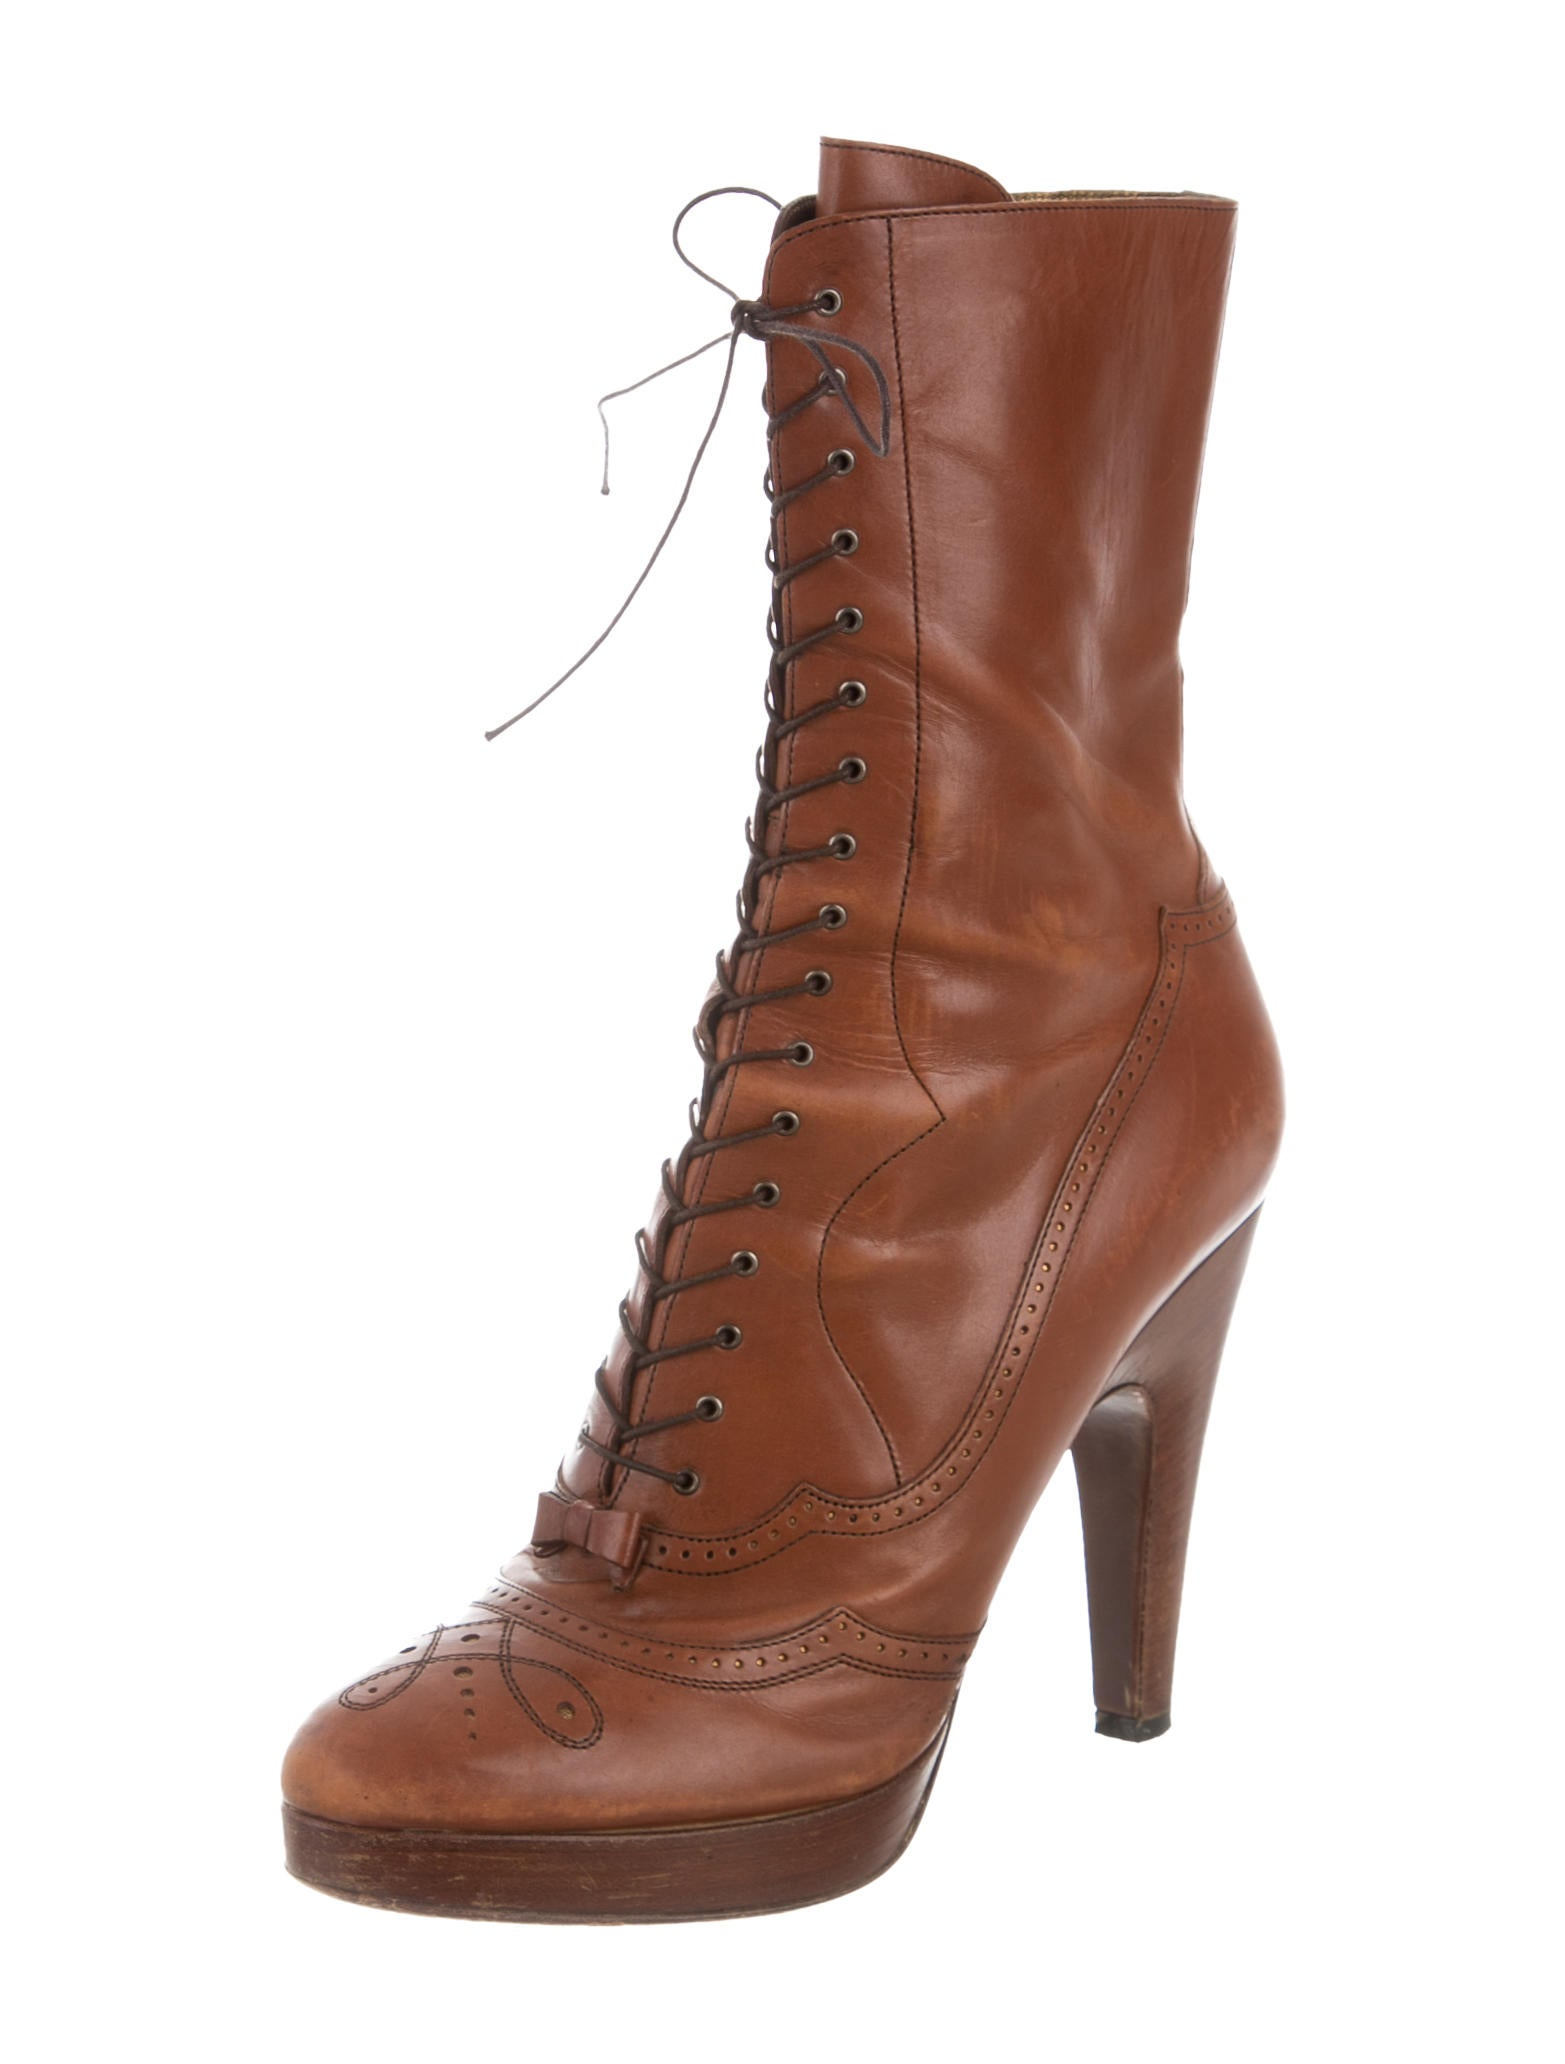 Elegant Michael Michael Kors Dawson Pointed-Toe Ankle Boots W/ Tags - Shoes - WM523933   The RealReal